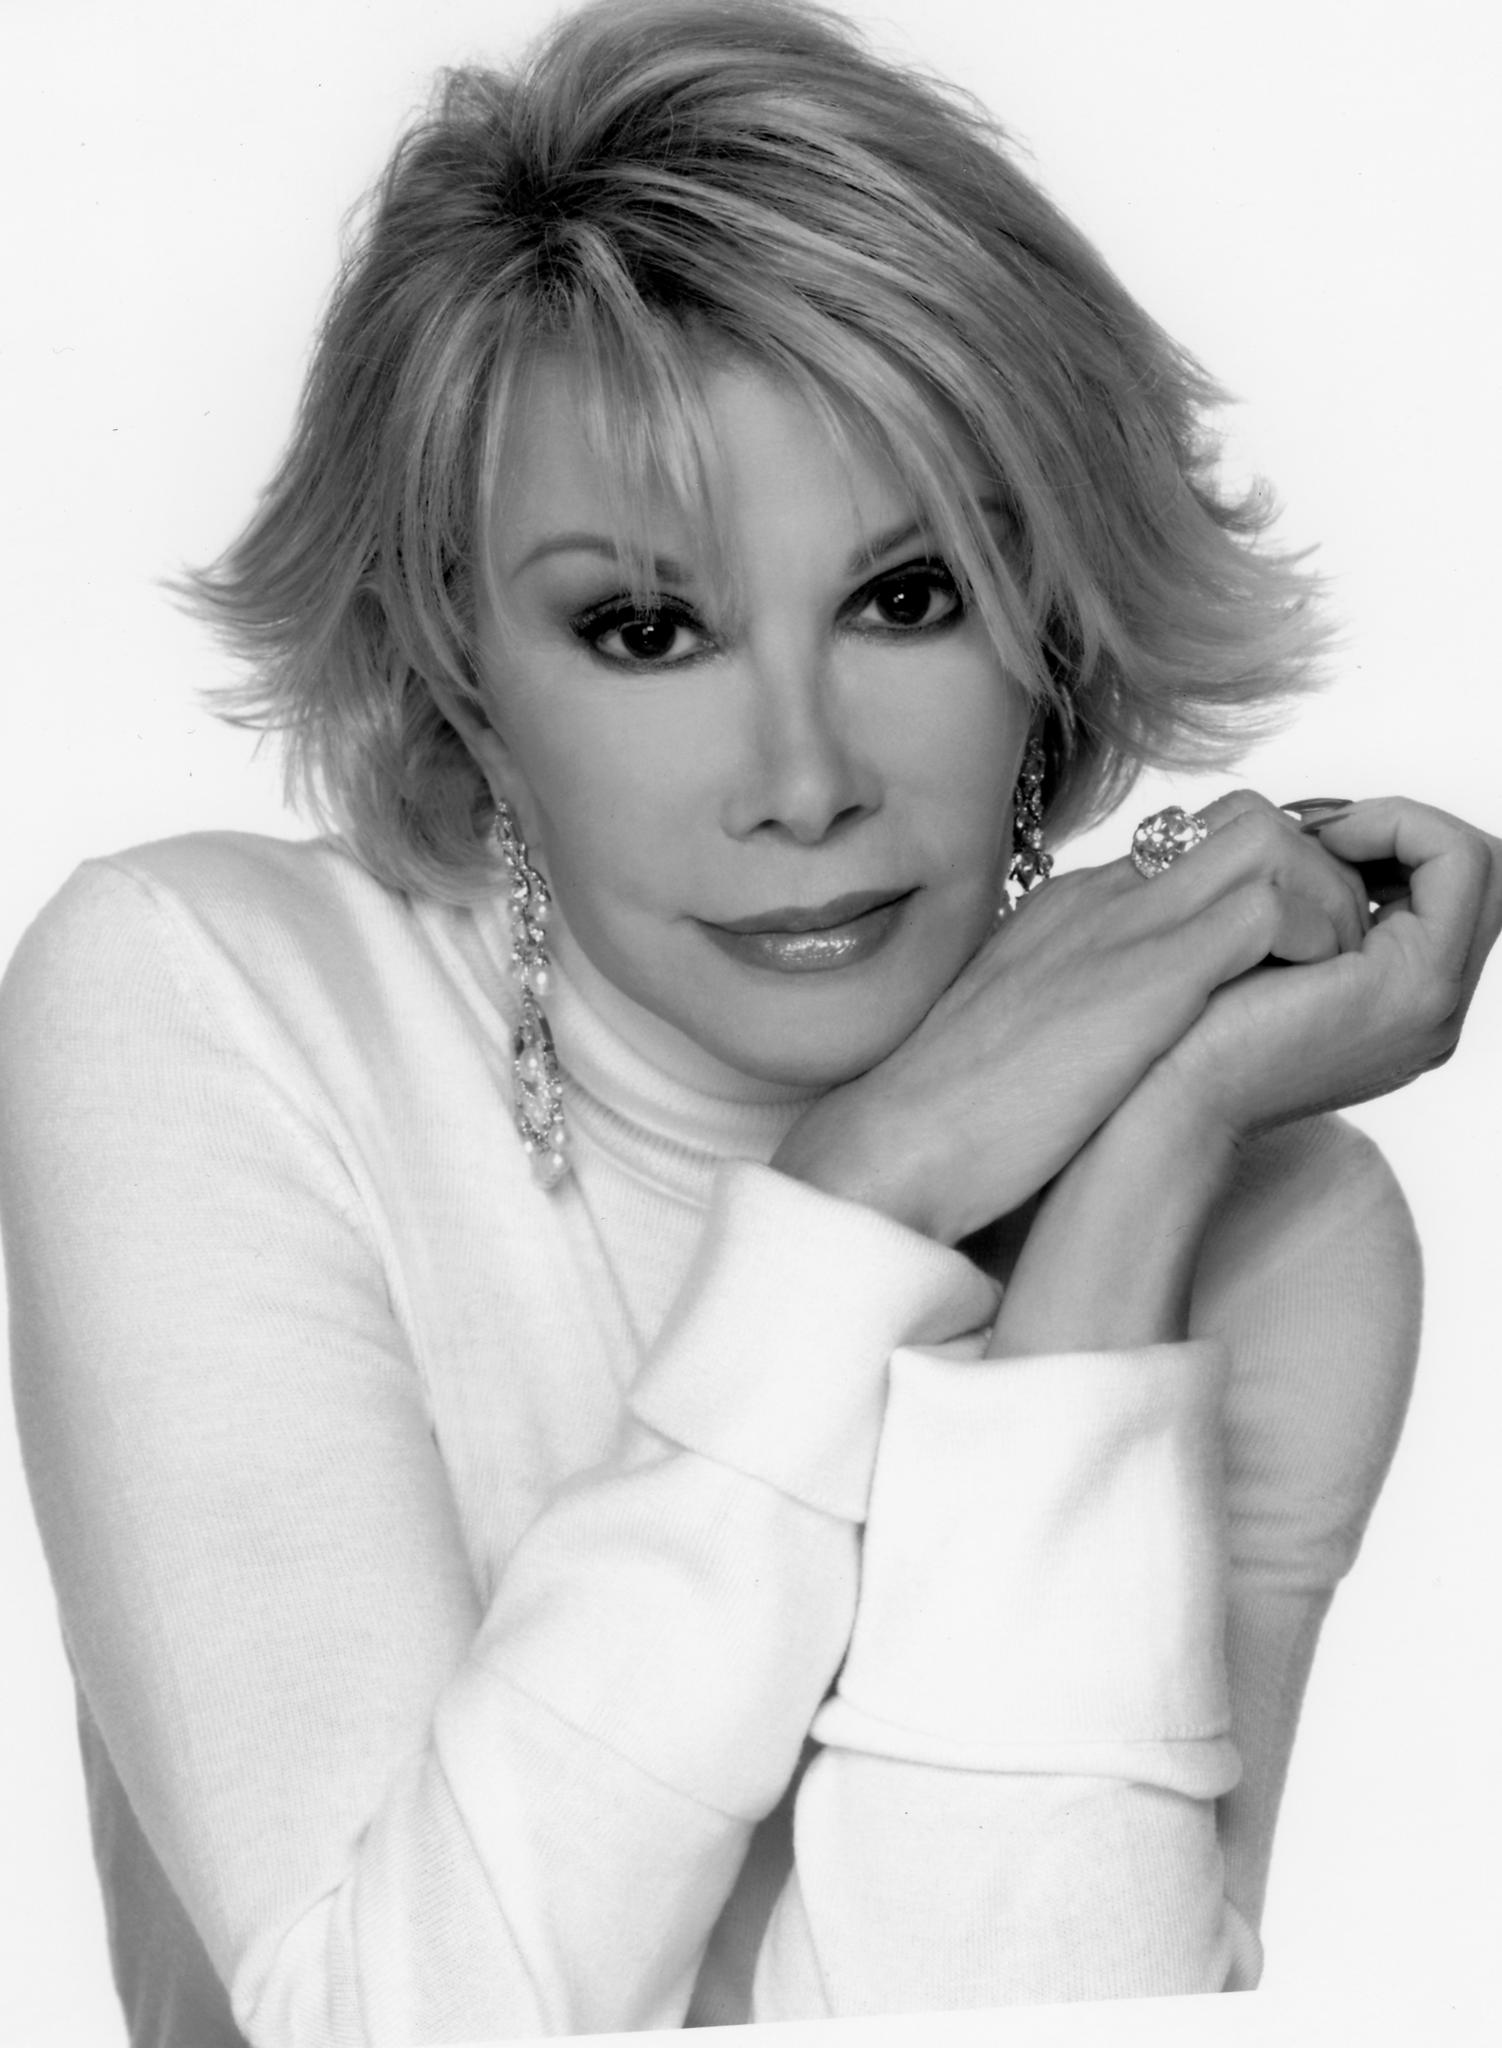 Melissa rivers the daughter of legenedary comedian joan rivers and